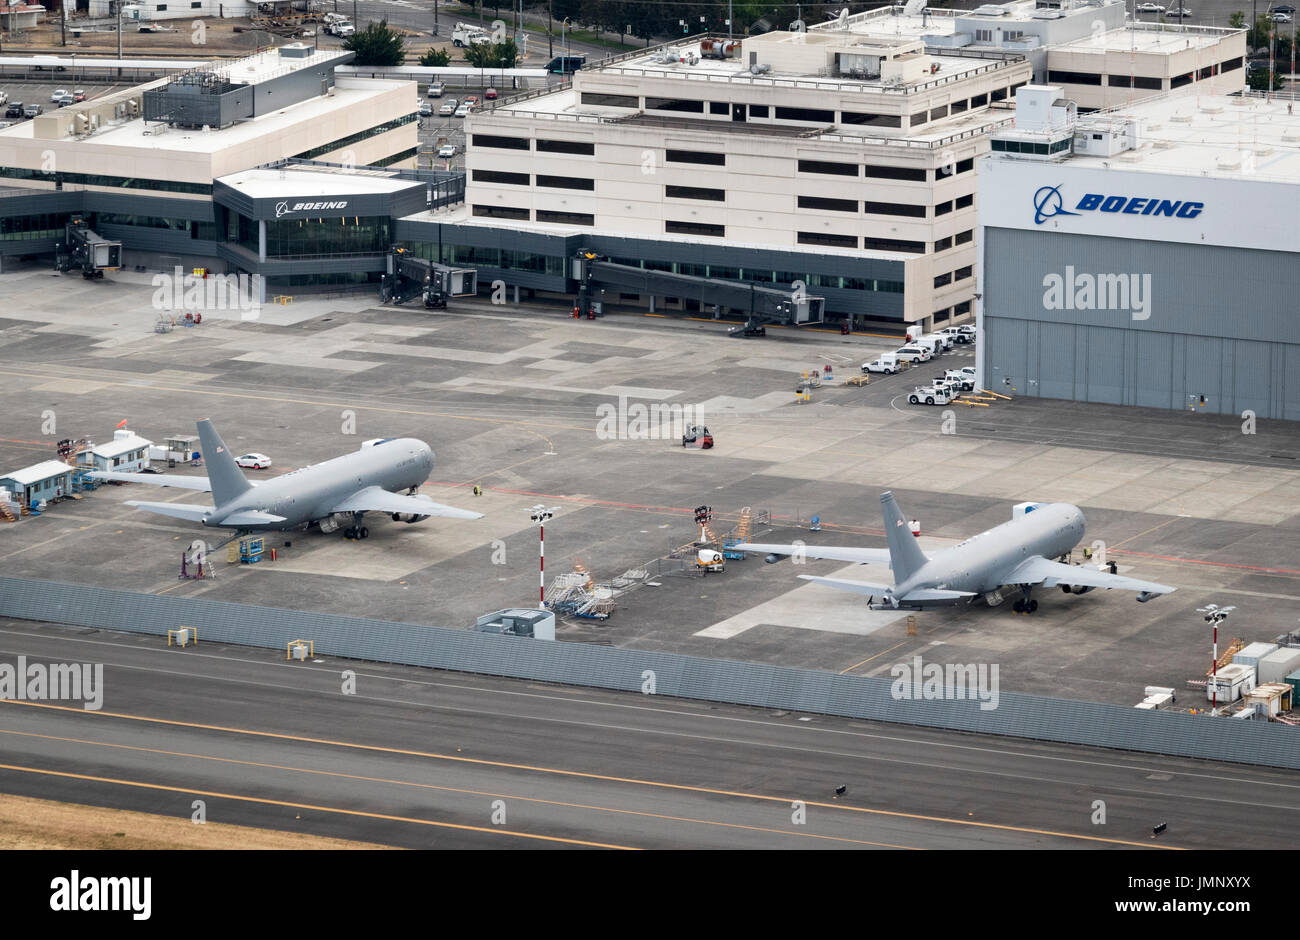 Boeing KC-46 Pegasus military aerial refueling and strategic transport aircraft, Boeing Field, Seattle, Washington State, USA - Stock Image